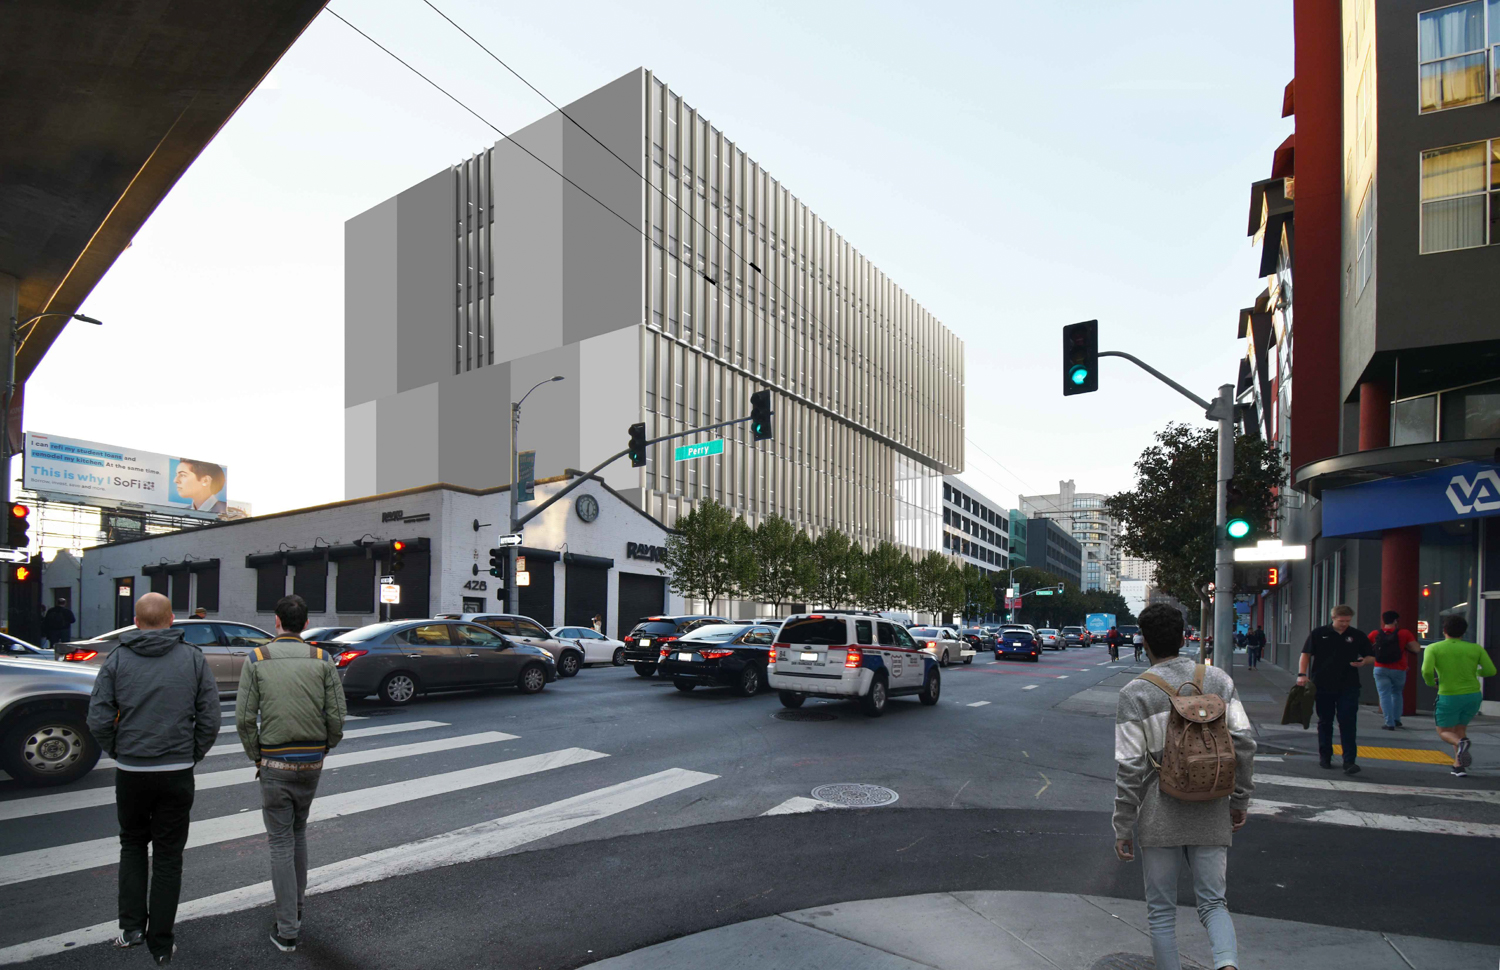 701 Harrison Street, with simplified concrete wall designed to allow for development of the neighboring site, design by Iwamottoscott Architecture